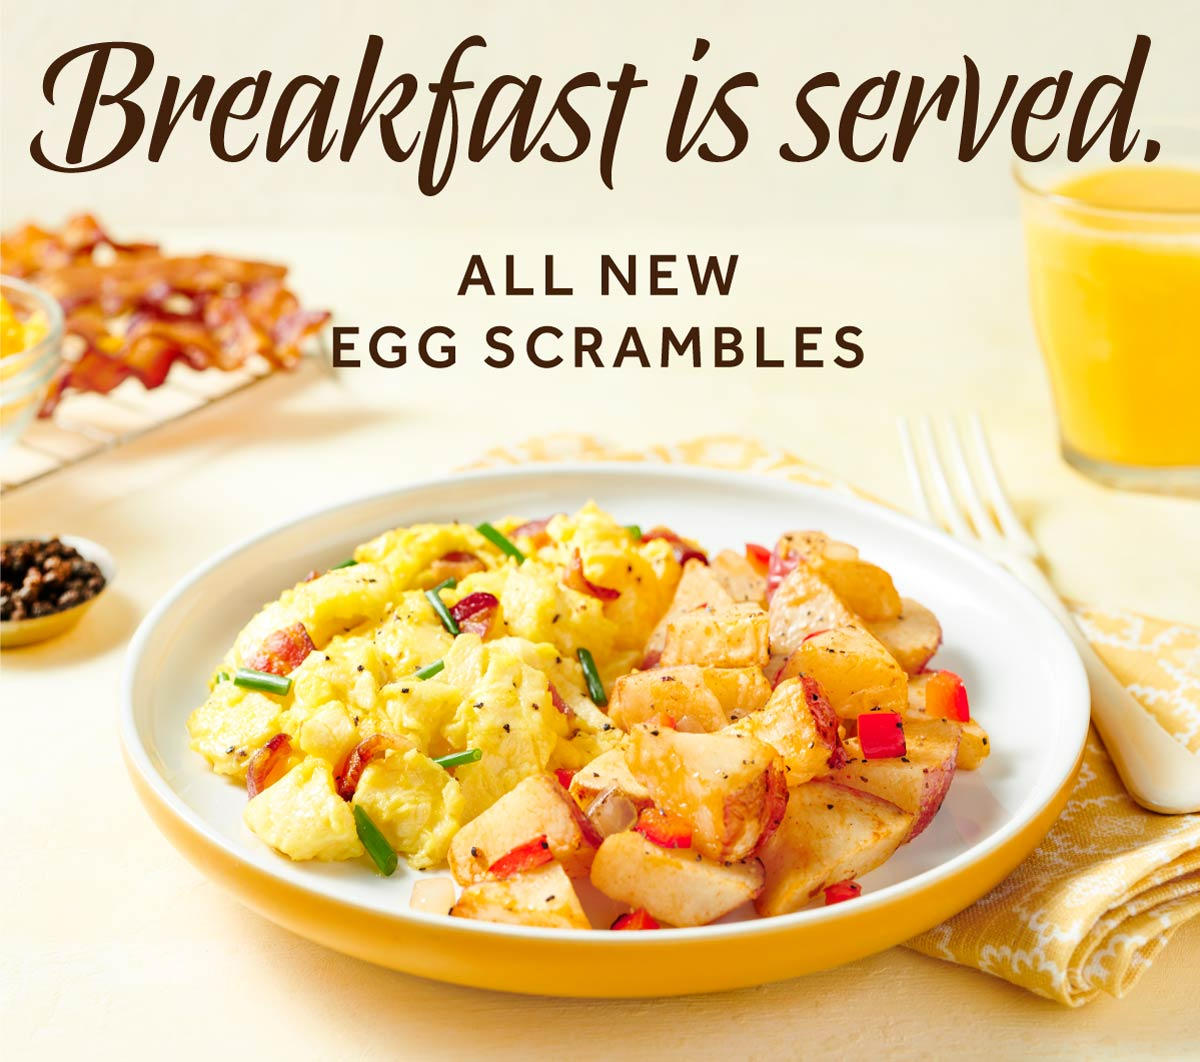 Breakfast is served. Introducing all-new Egg Scrambles!